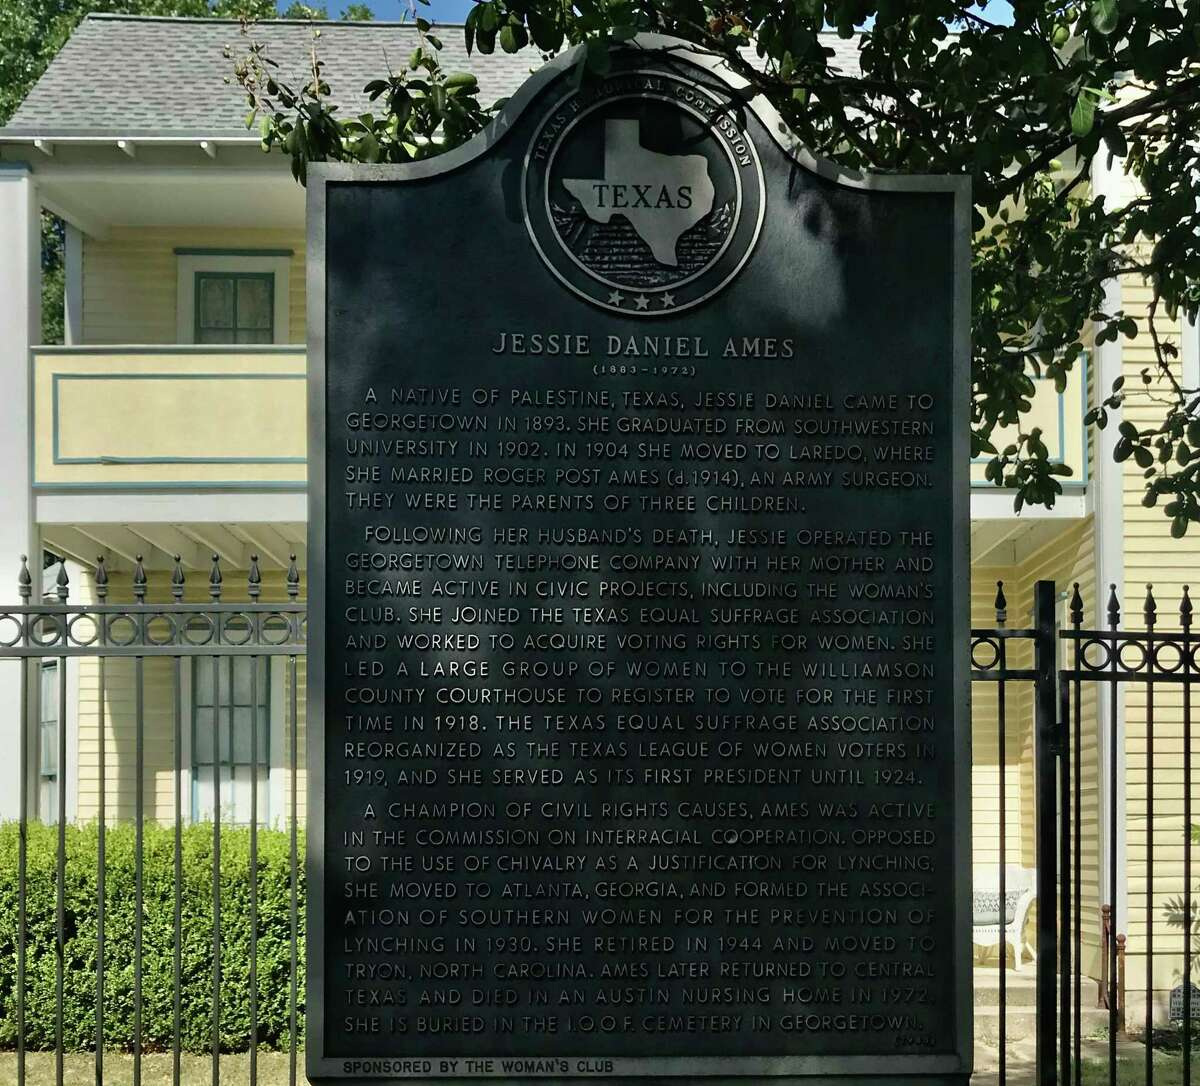 The Ames House and historical marker are a few blocks south of the Williamson County Courthouse in downtown Georgetown.